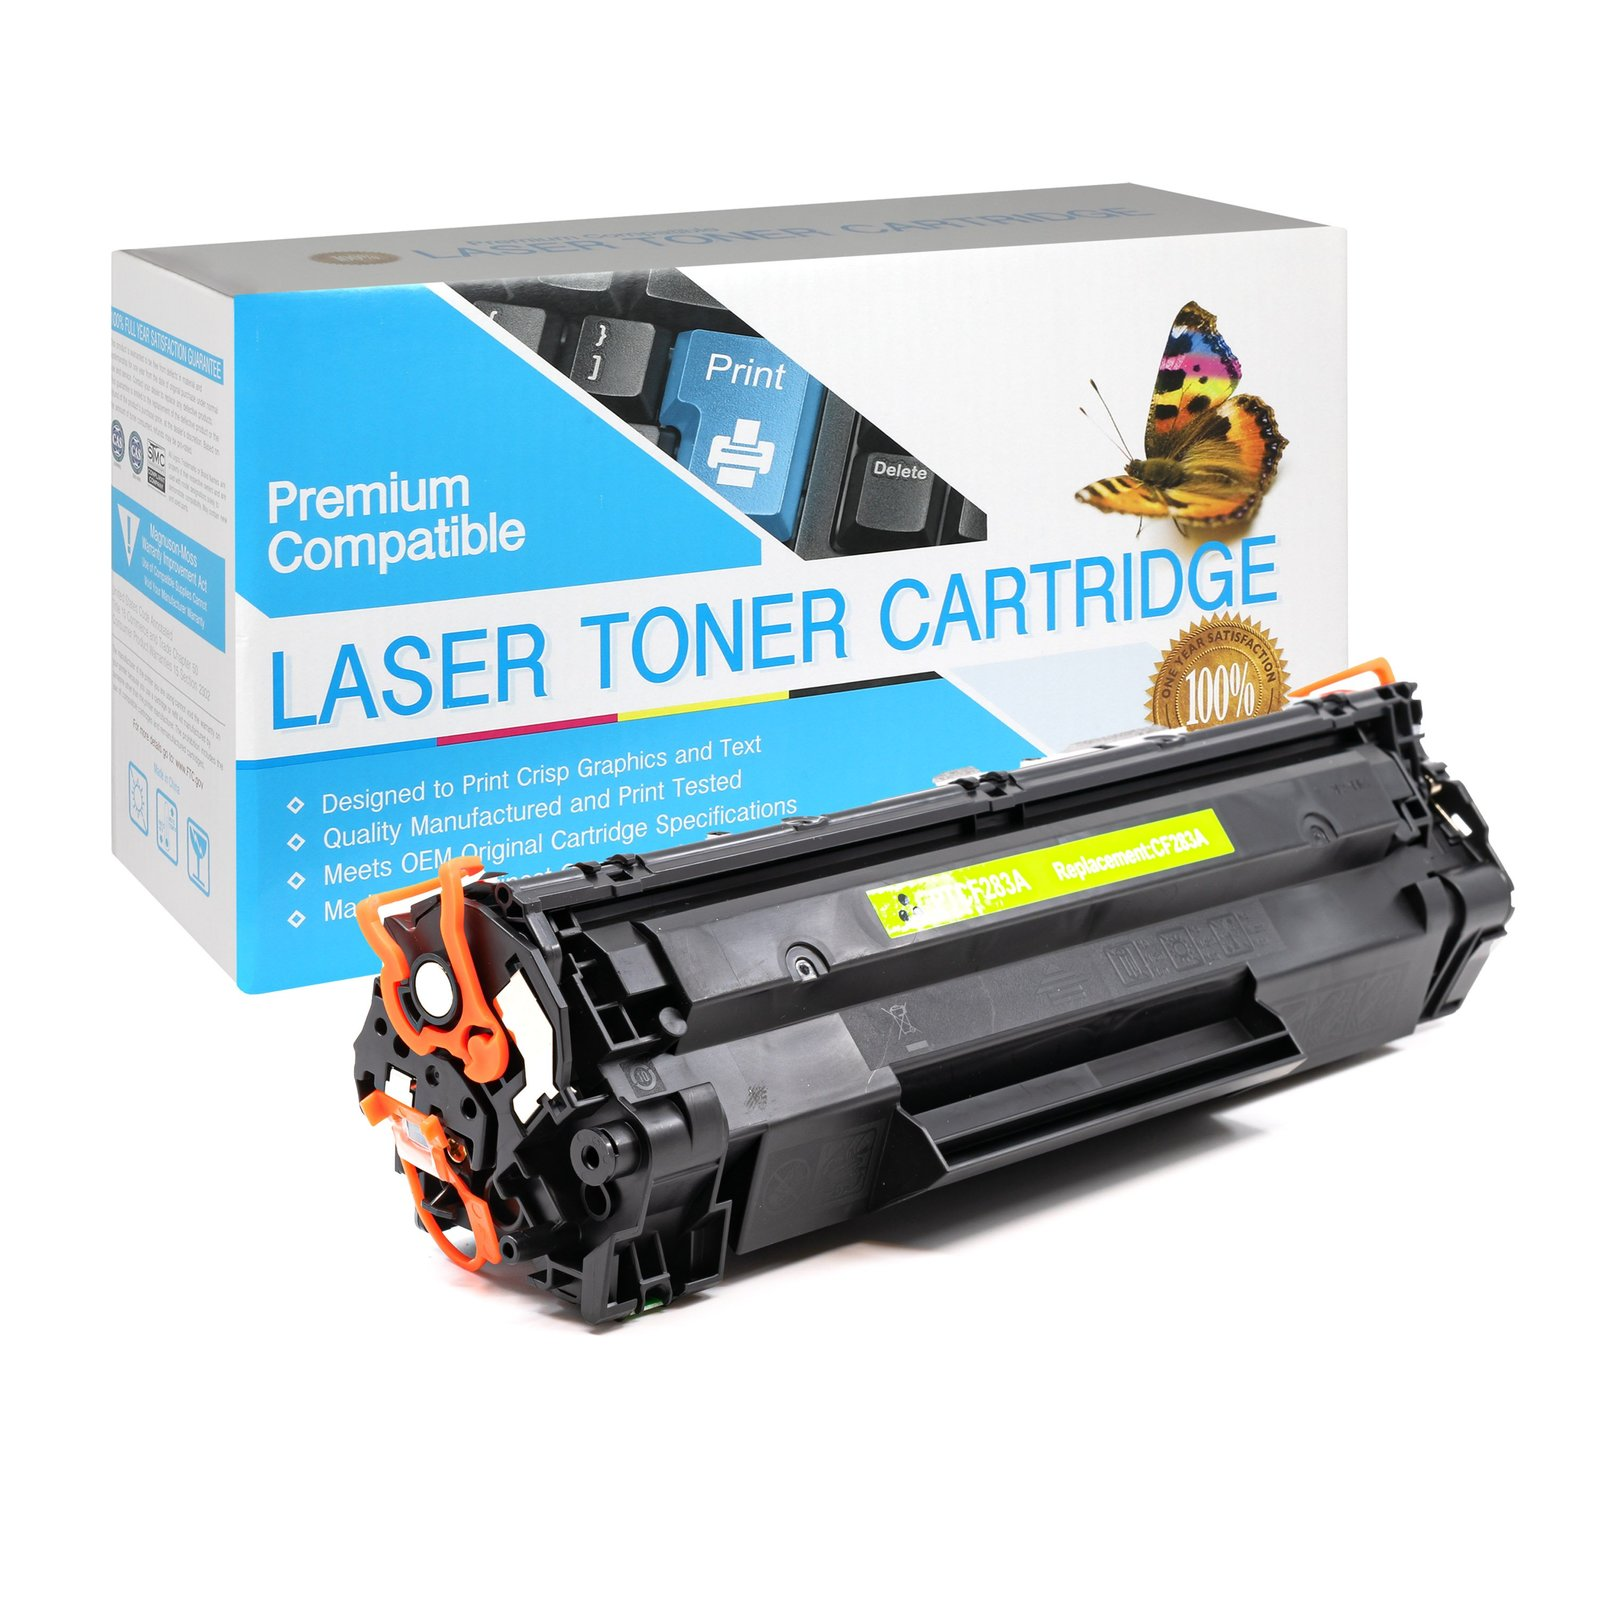 CF283A Black Toner Cartridge compatible with the HP CF283A - $21.99